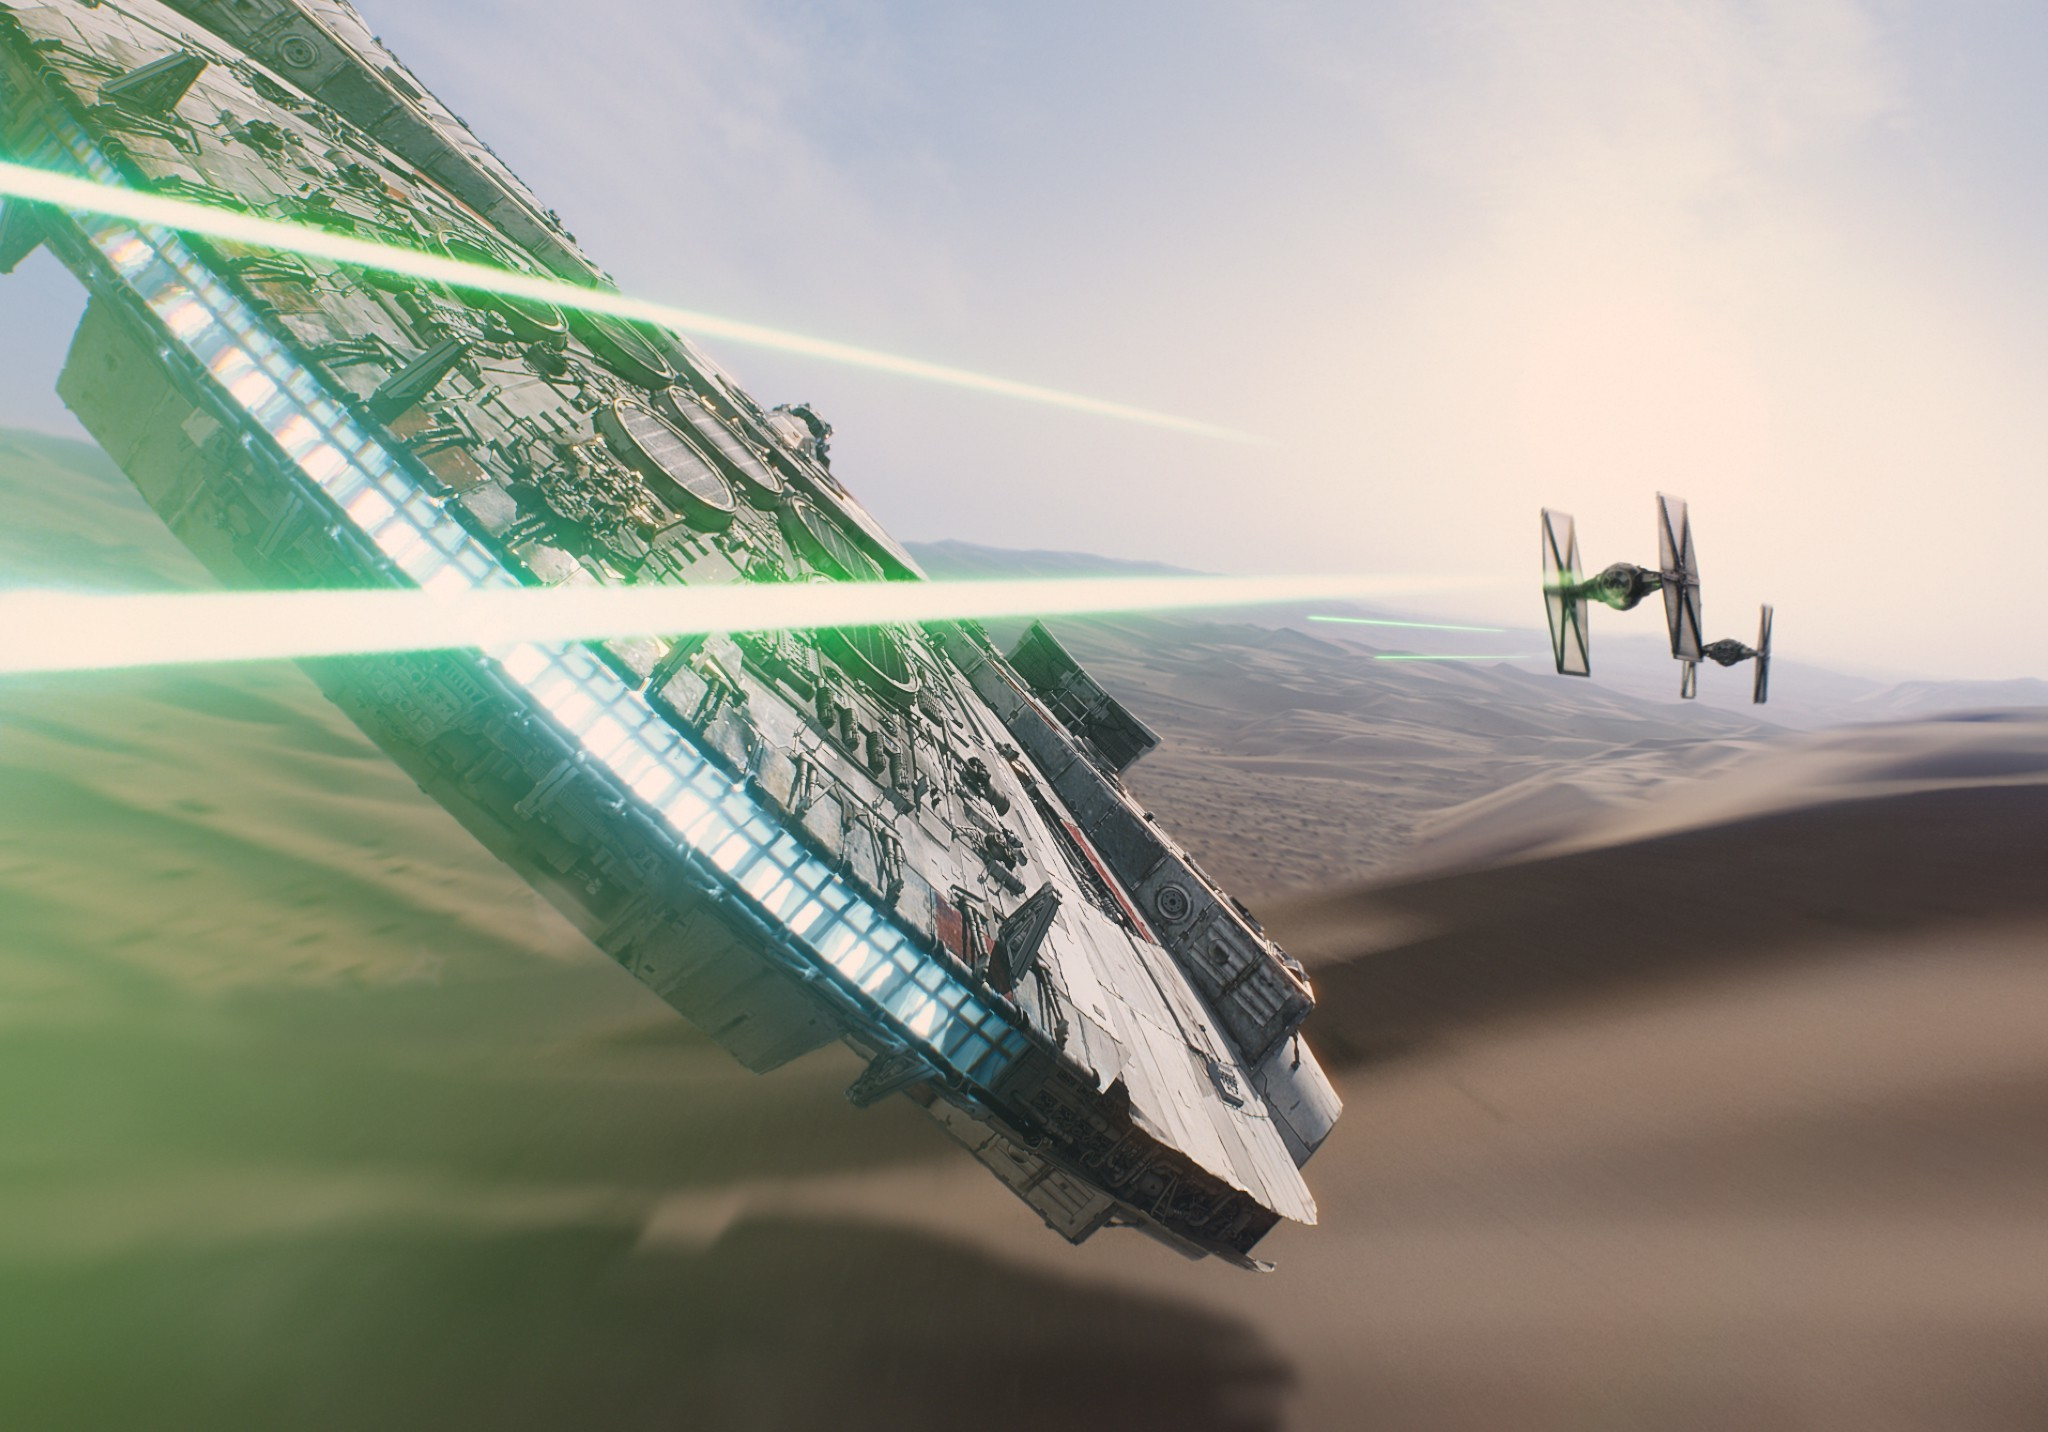 Star Wars, Star Wars: Episode VII The Force Awakens, Millennium Falcon Wallpapers  HD / Desktop and Mobile Backgrounds